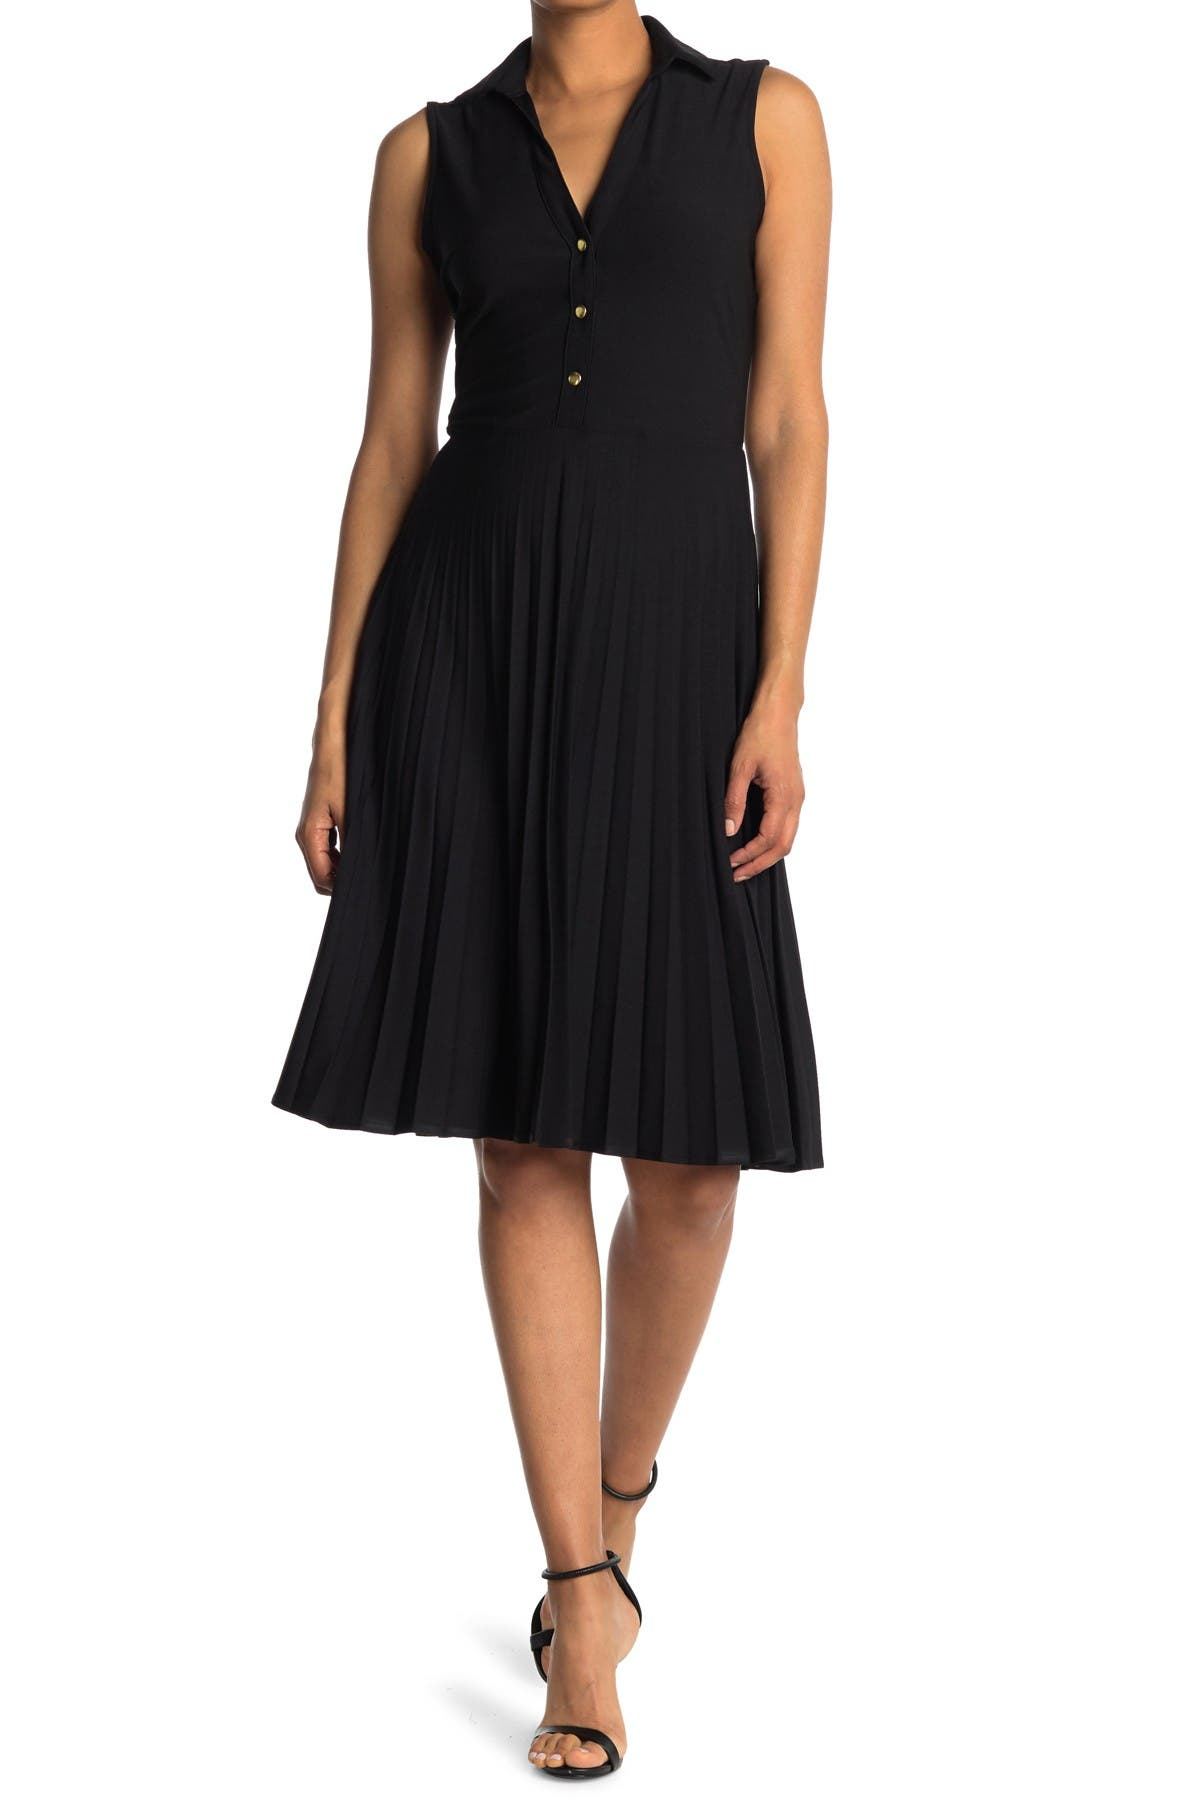 Image of TASH + SOPHIE Collared Dress w/ Pleated Skirt